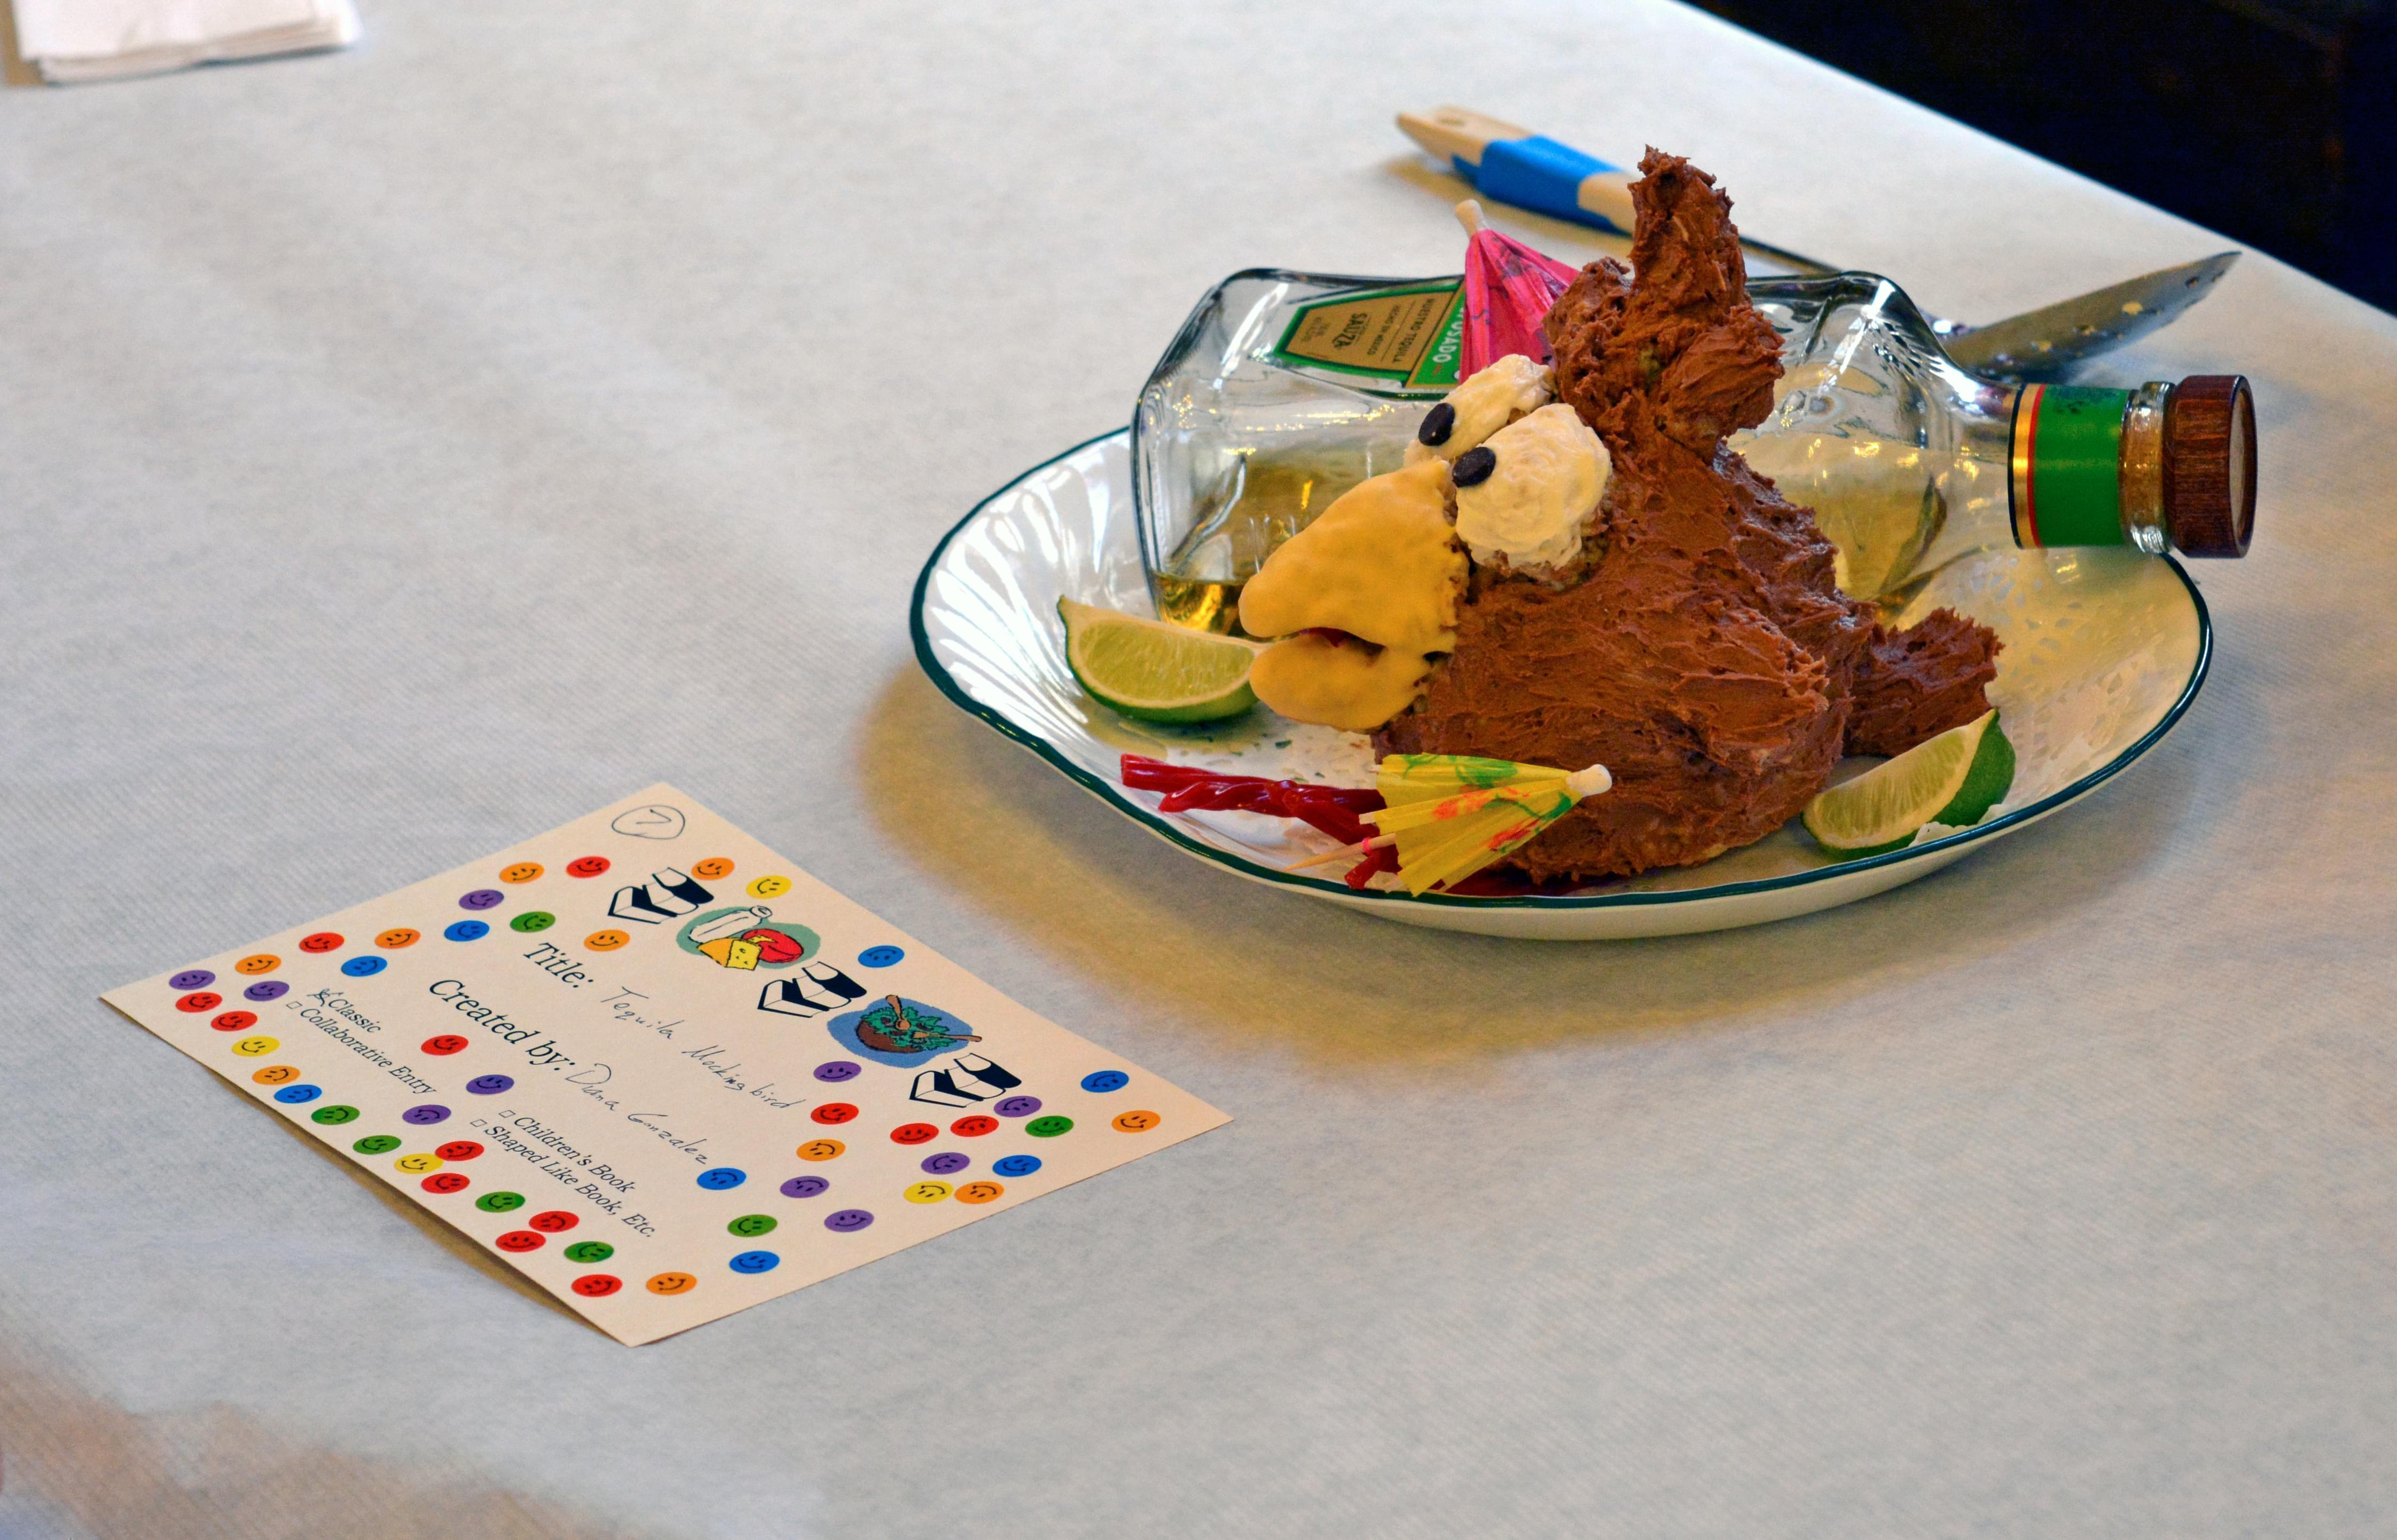 a cake called tequila mockingbird decorated to look like a drunk bird and a bottle of tequila